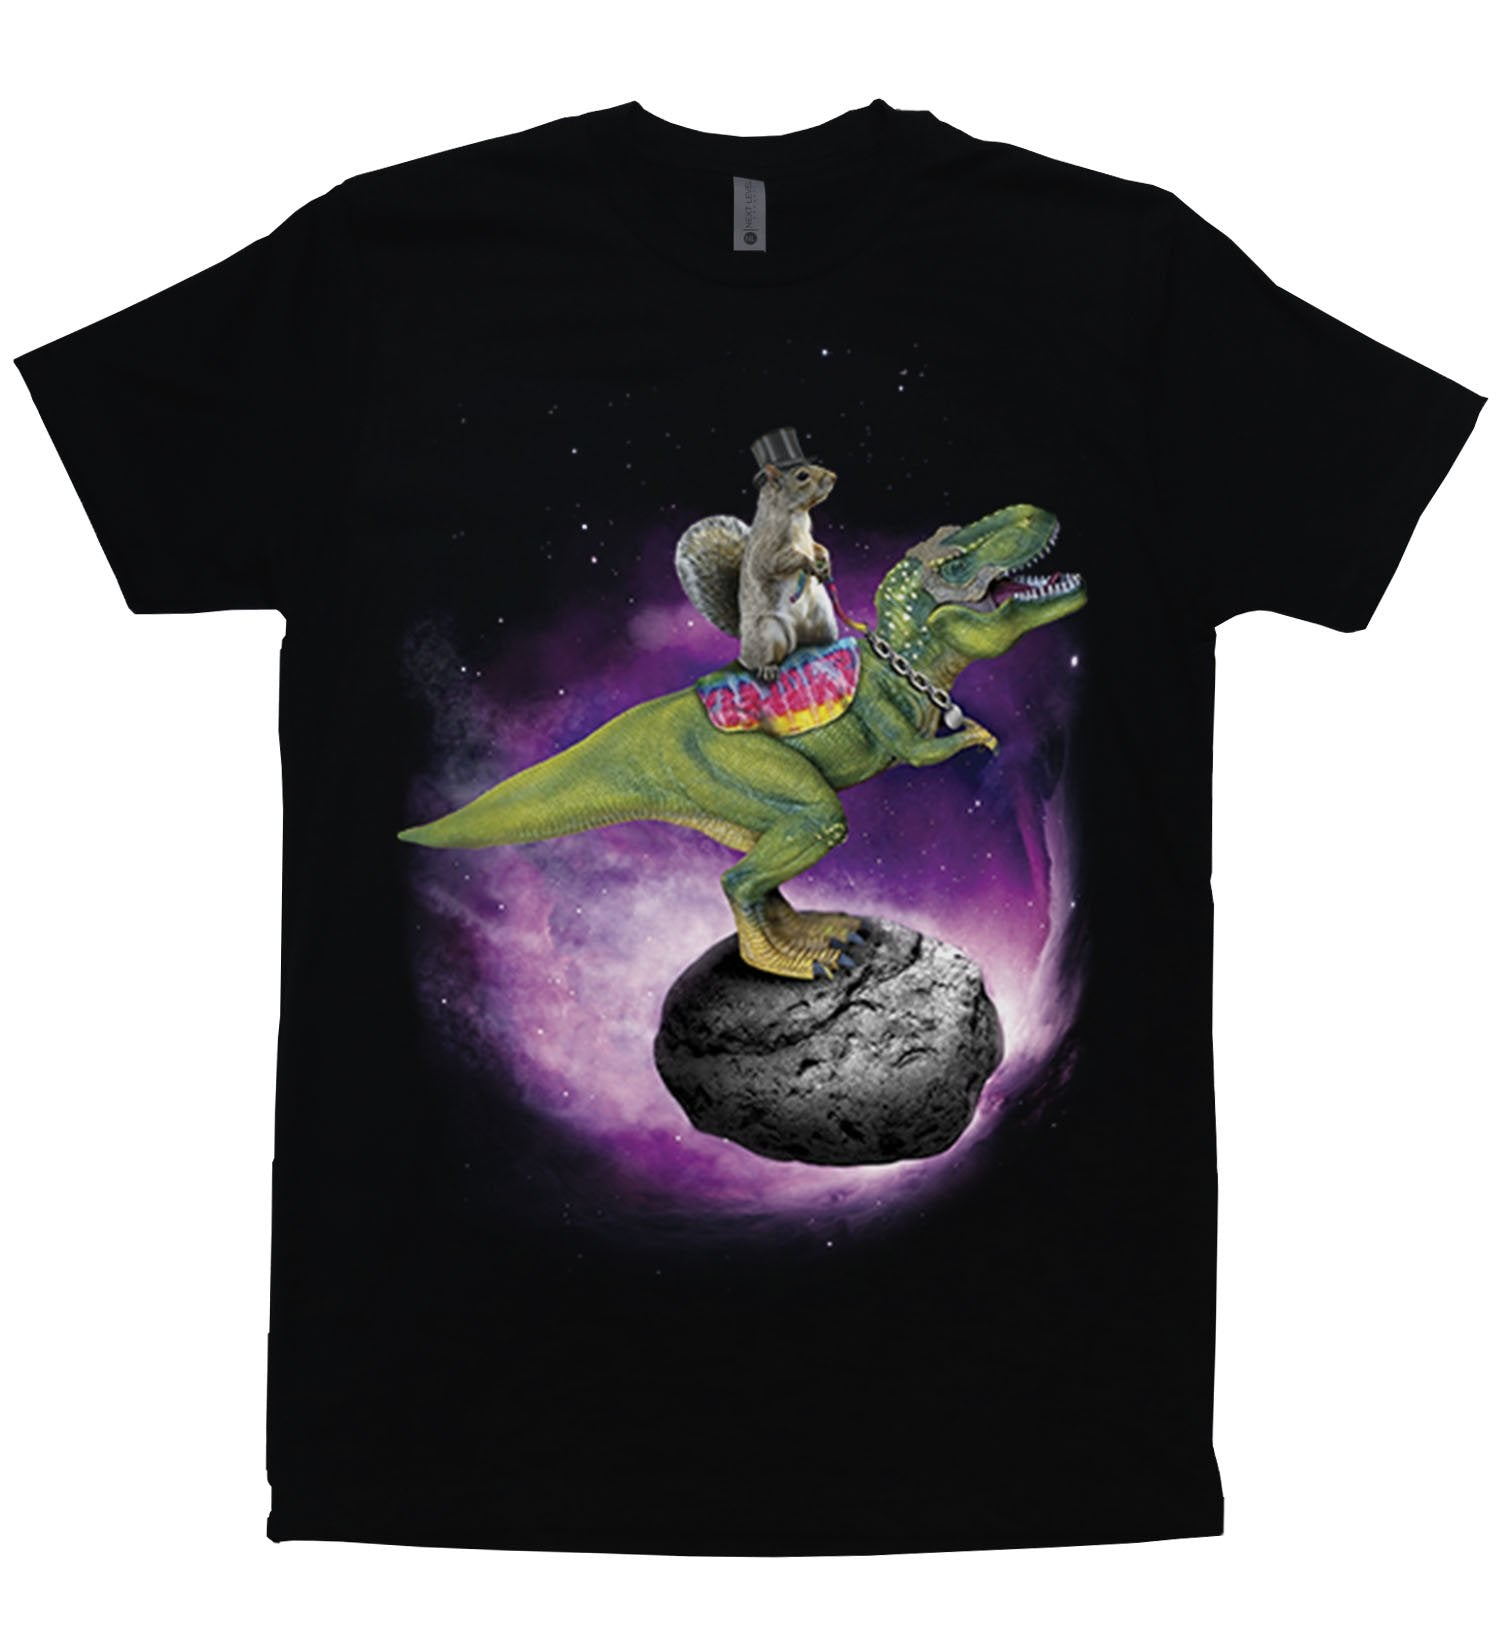 A squirrel wearing a tophat riding a t-rex dinosaur that is standing atop an asteroid in space